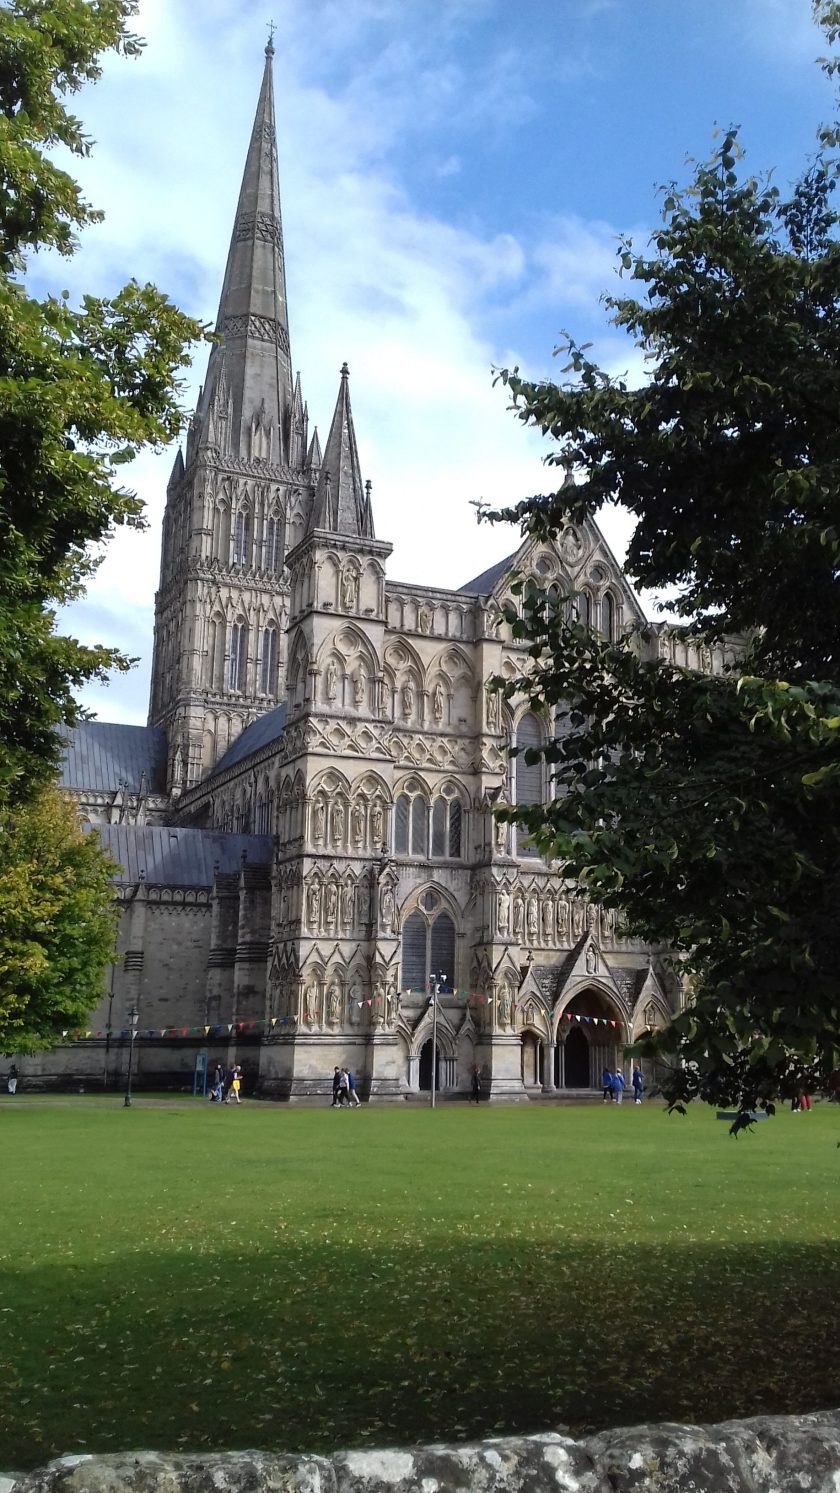 The beautiful gothic front of Salisbury cathedral